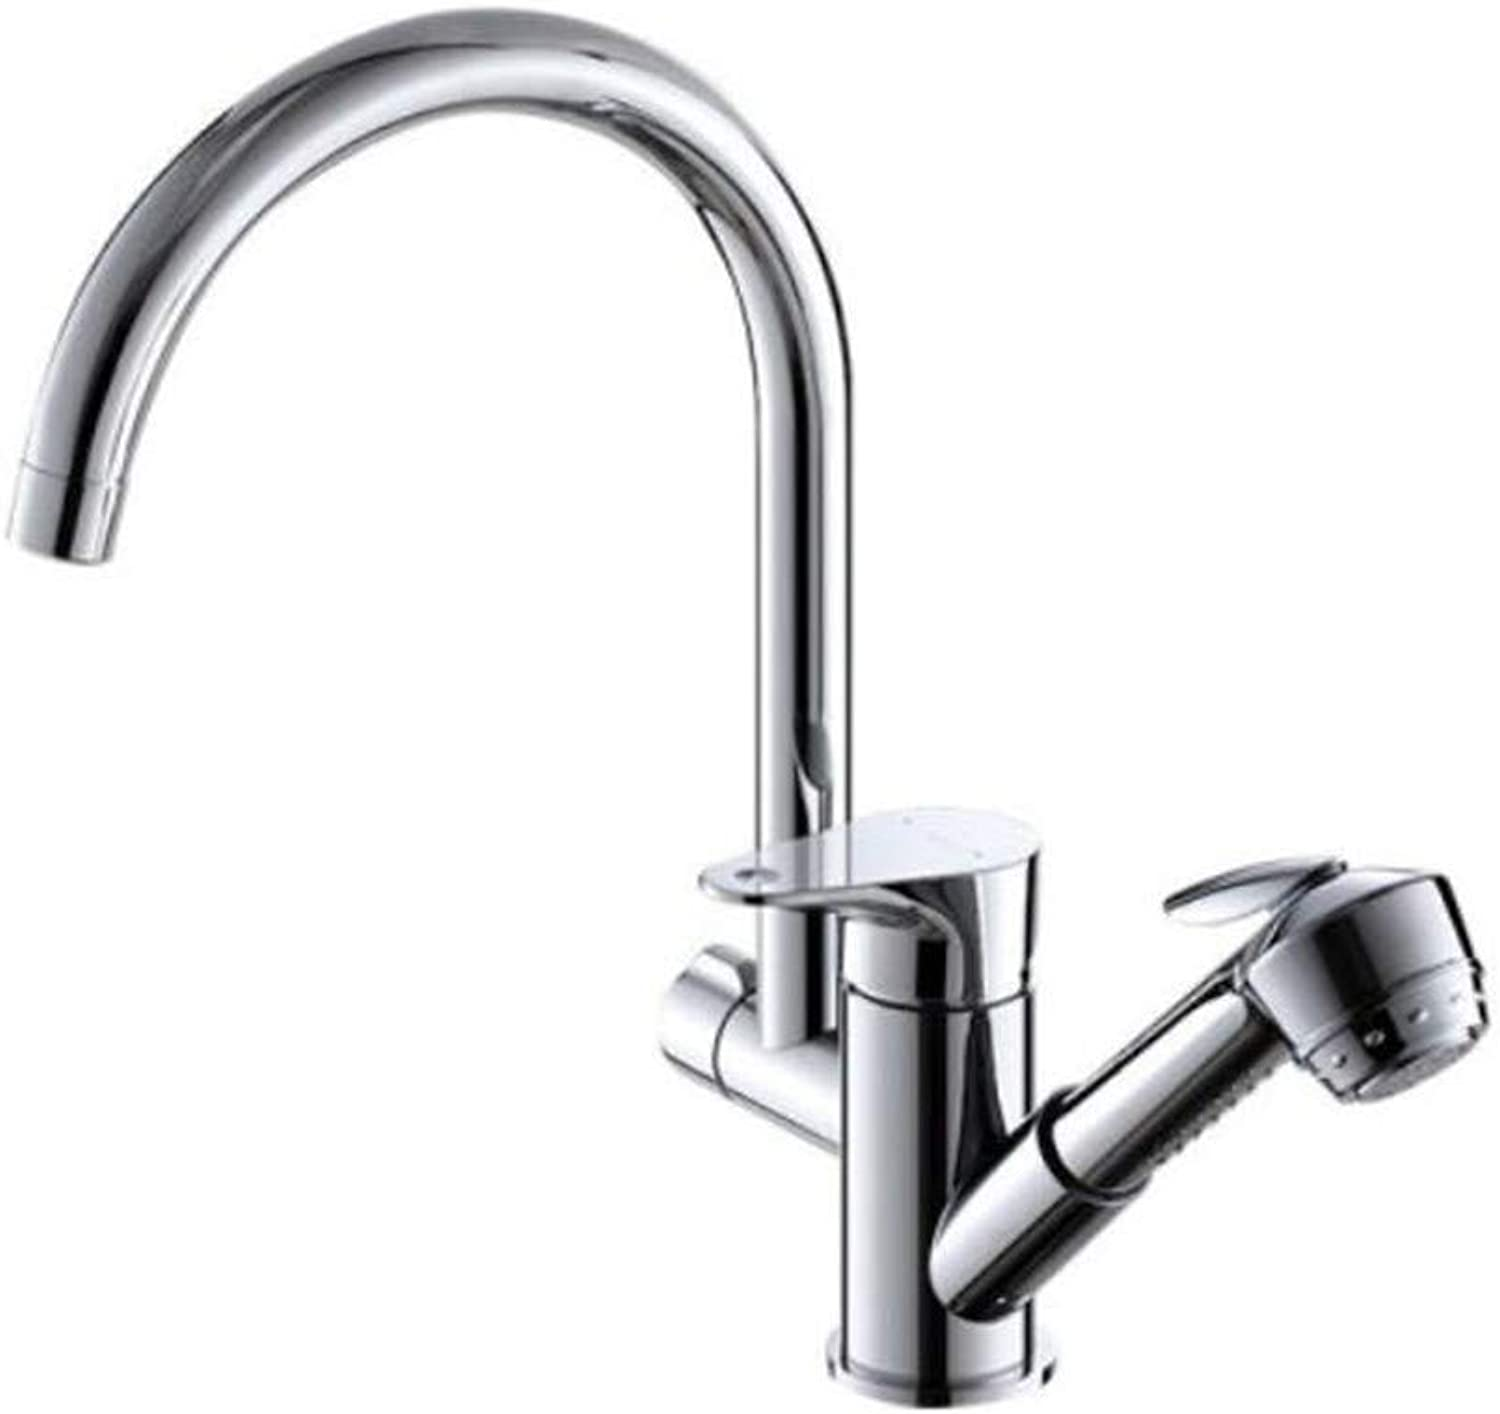 Faucet Waste Mono Spoutmultifunctional Cooling and Hot Pumping Tank Copper Washing Pot in Bathroom Kitchen